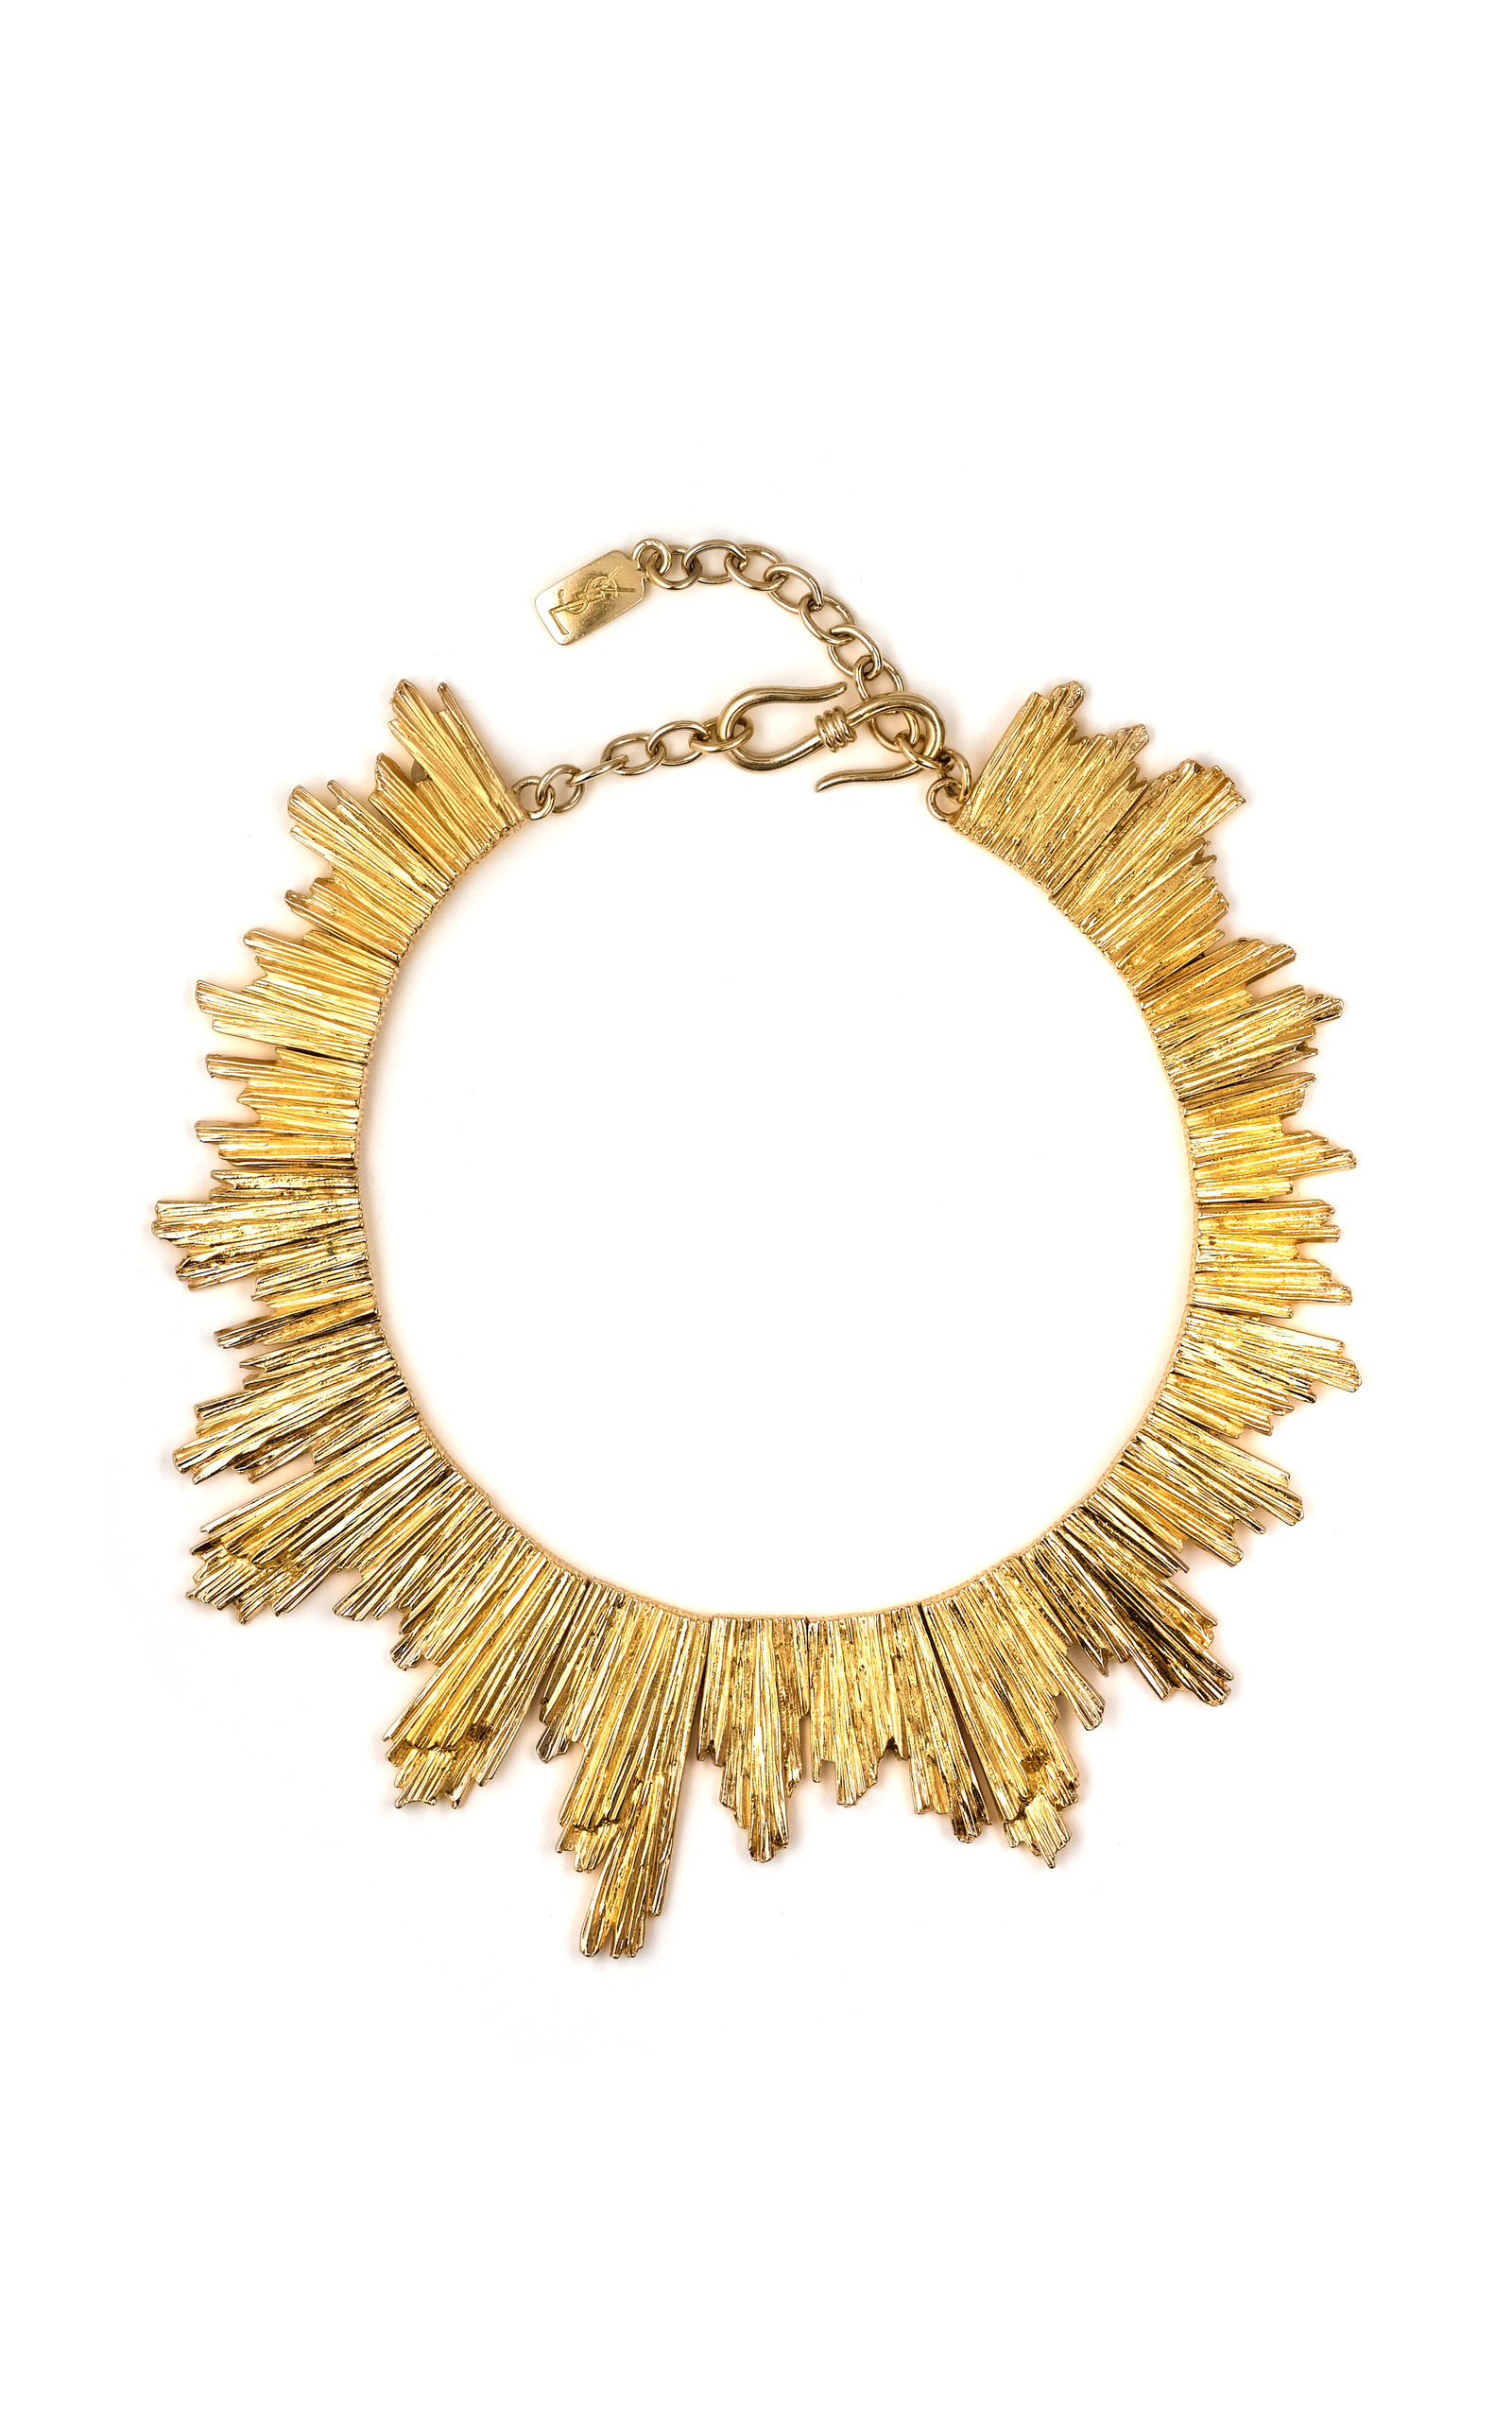 vintage necklace operandi o large ysl gold moda sun karry by other karryo